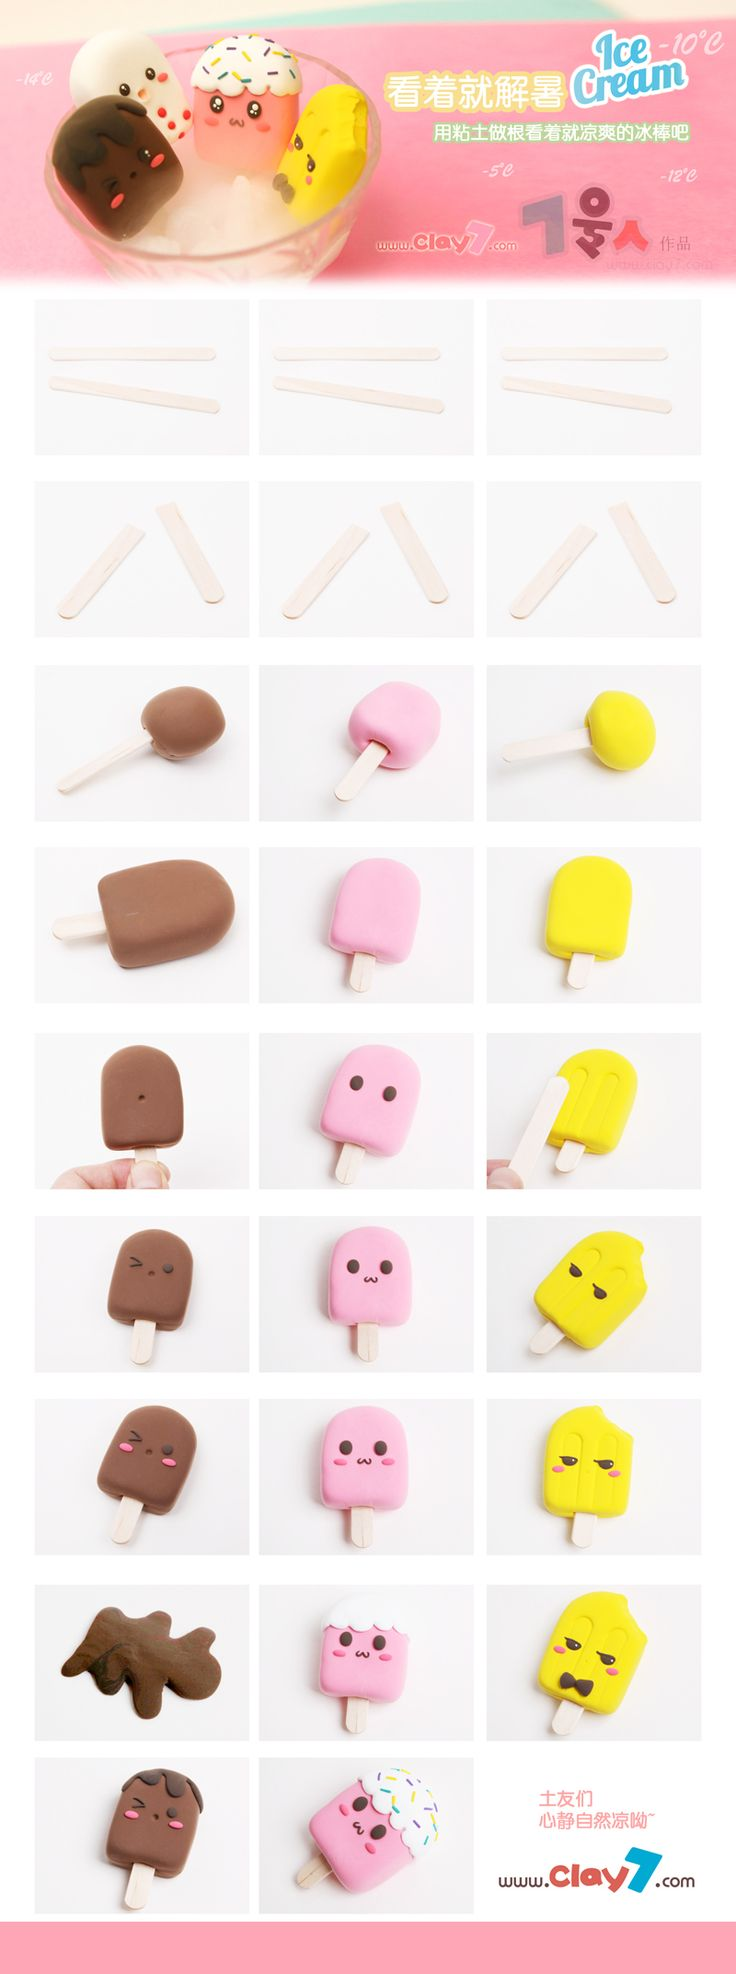 diy glaces kawaii fimo....(love, love!! want to try these cool, fimo treats out! oh what fun and simple to do!)....